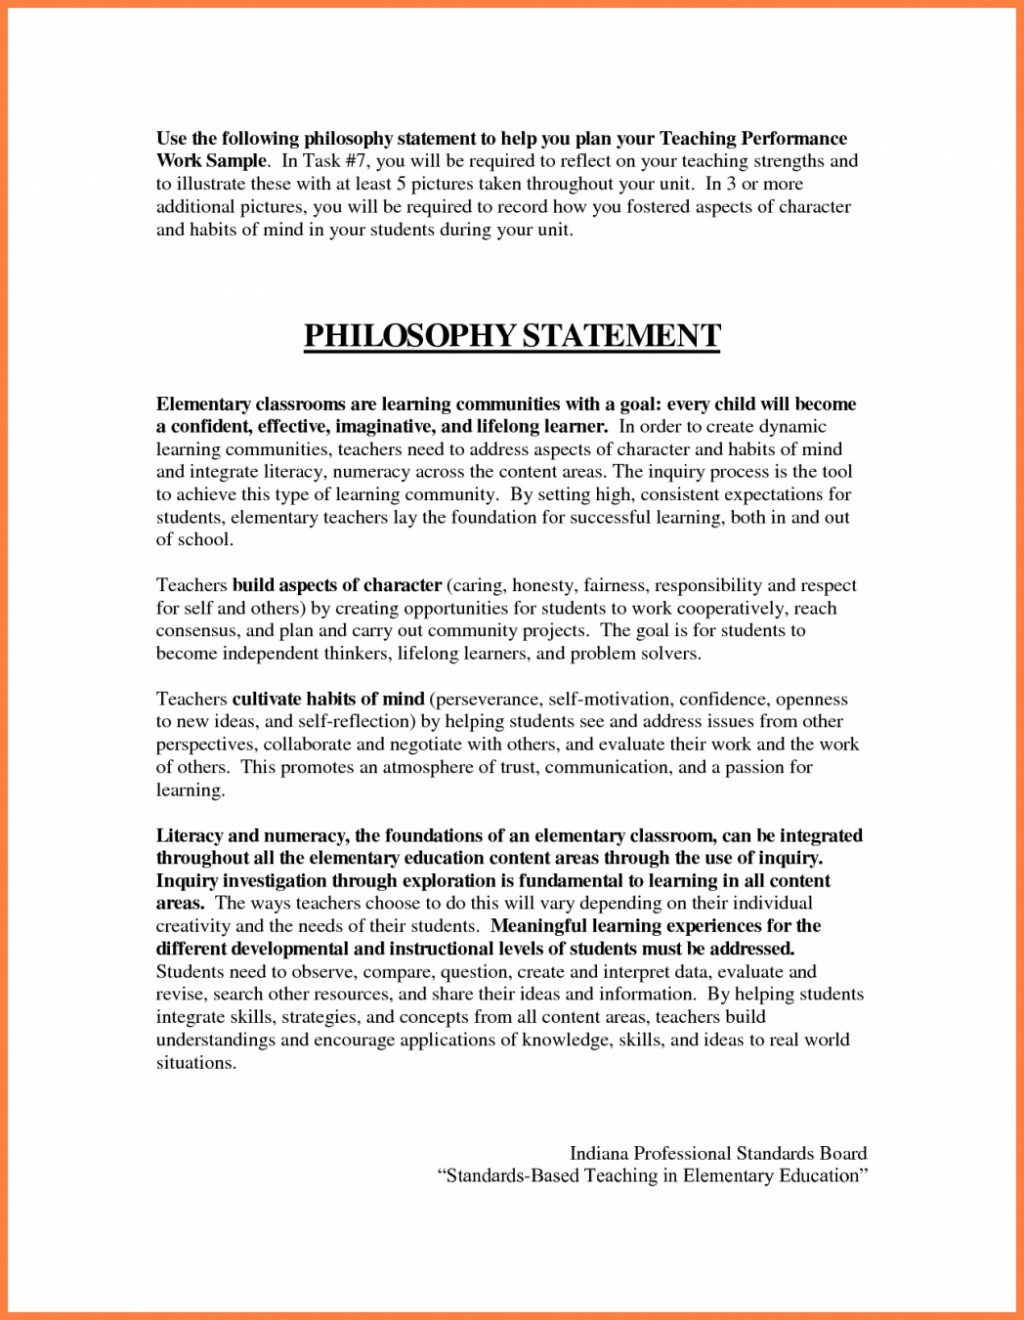 013 Essay Exampleaching Philosophy Statement Coursework Academic Writing Of Early Childhood Education Essays Self Reflection On My Personal 1048x1351 Why I Want To An Exceptional Be Teacher A Preschool Large